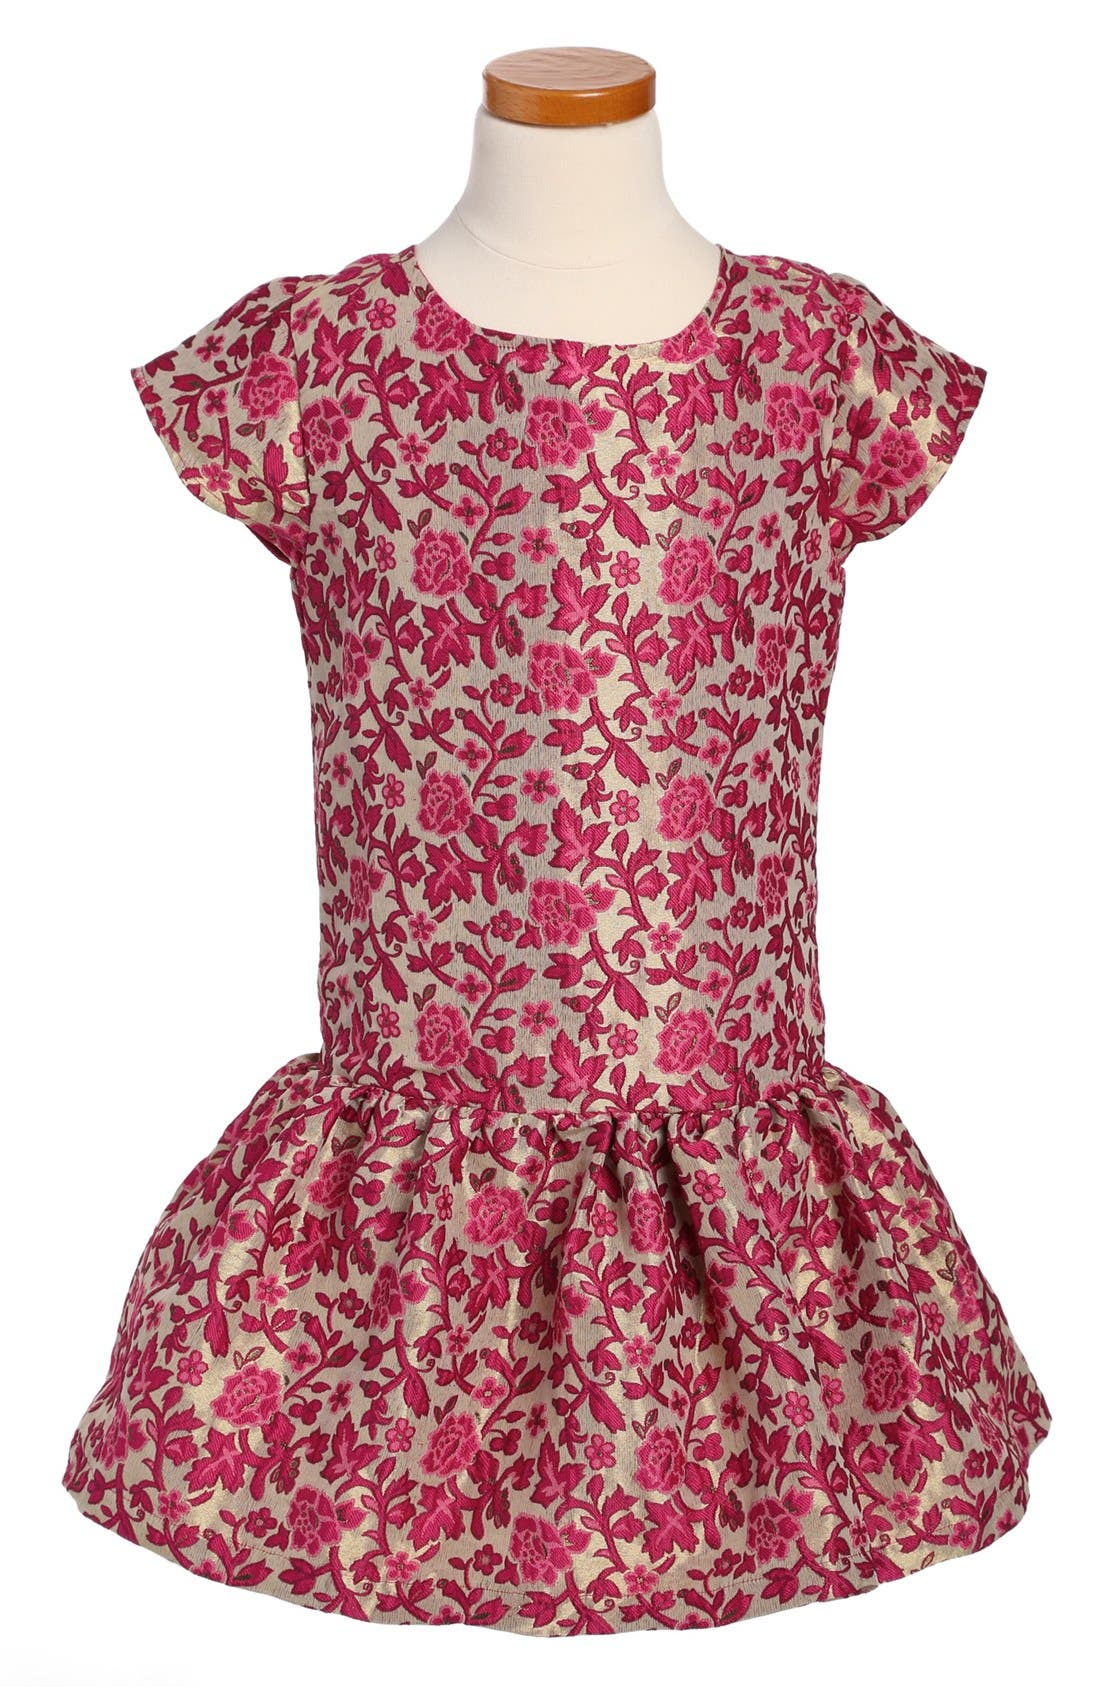 Main Image - Peek 'Annette' Dress (Toddler Girls, Little Girls & Big Girls)